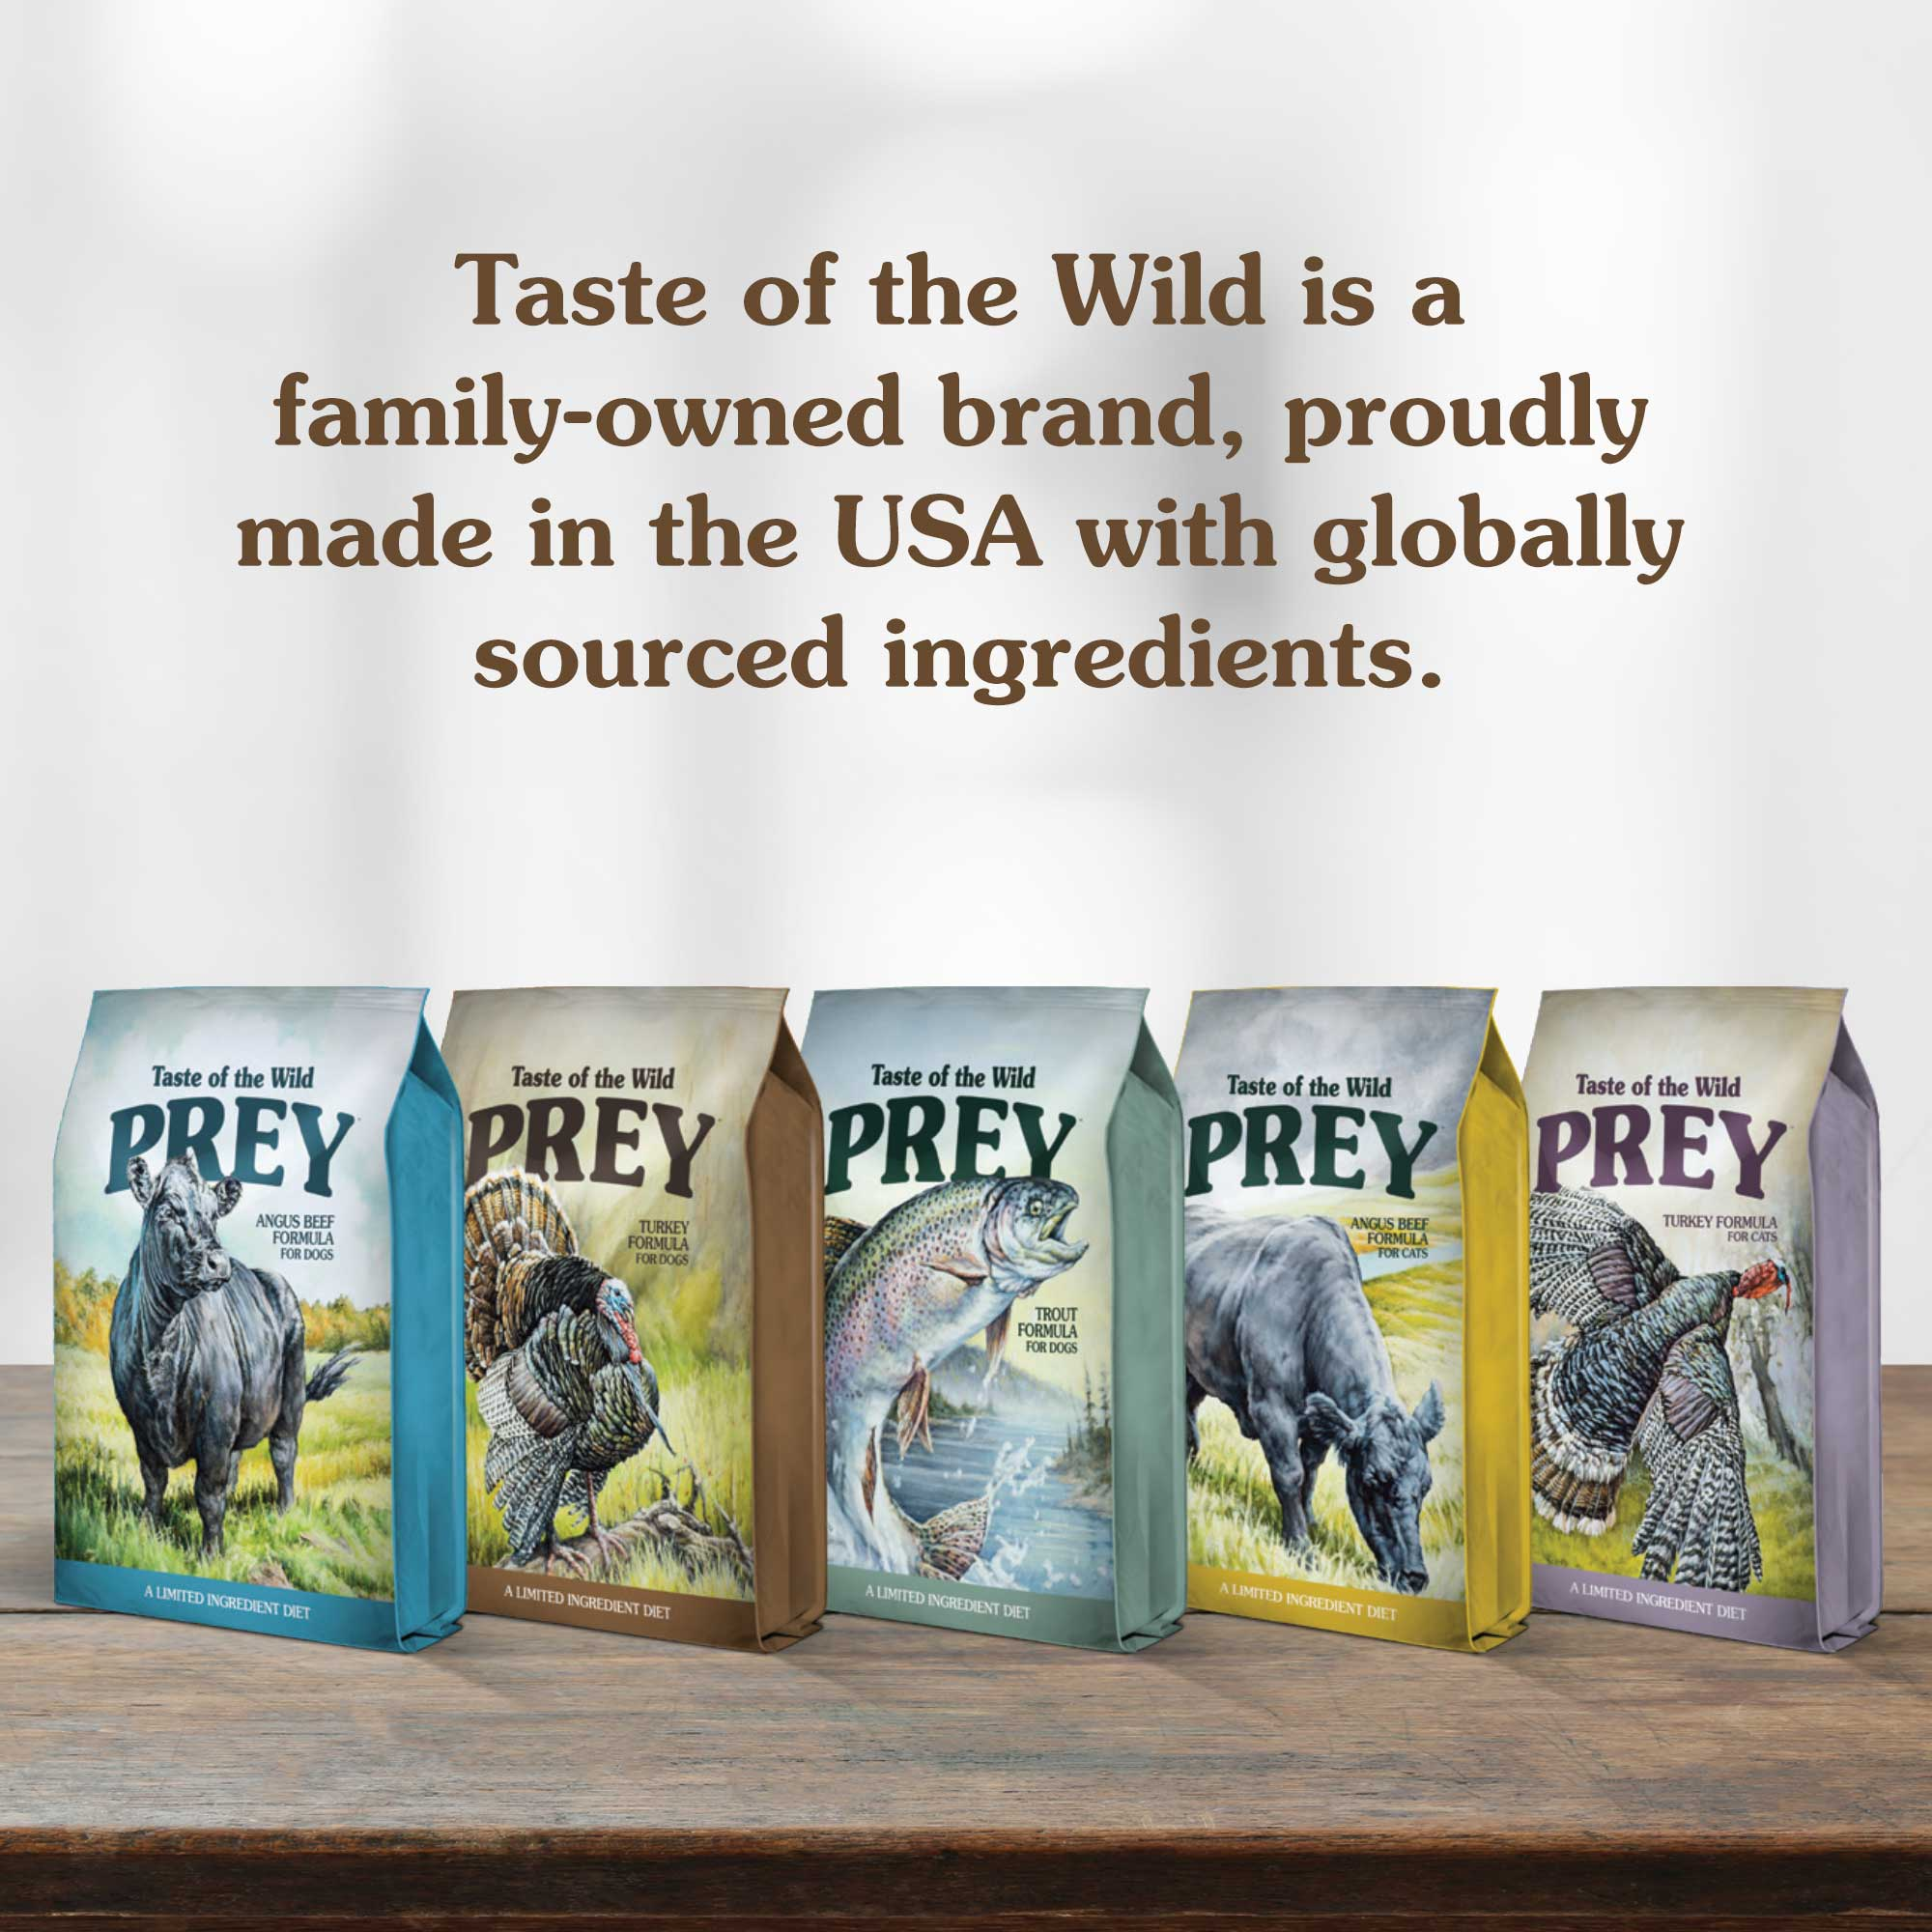 Taste of the Wild is a family-owned brand, proudly made in the USA with globally sourced ingredients